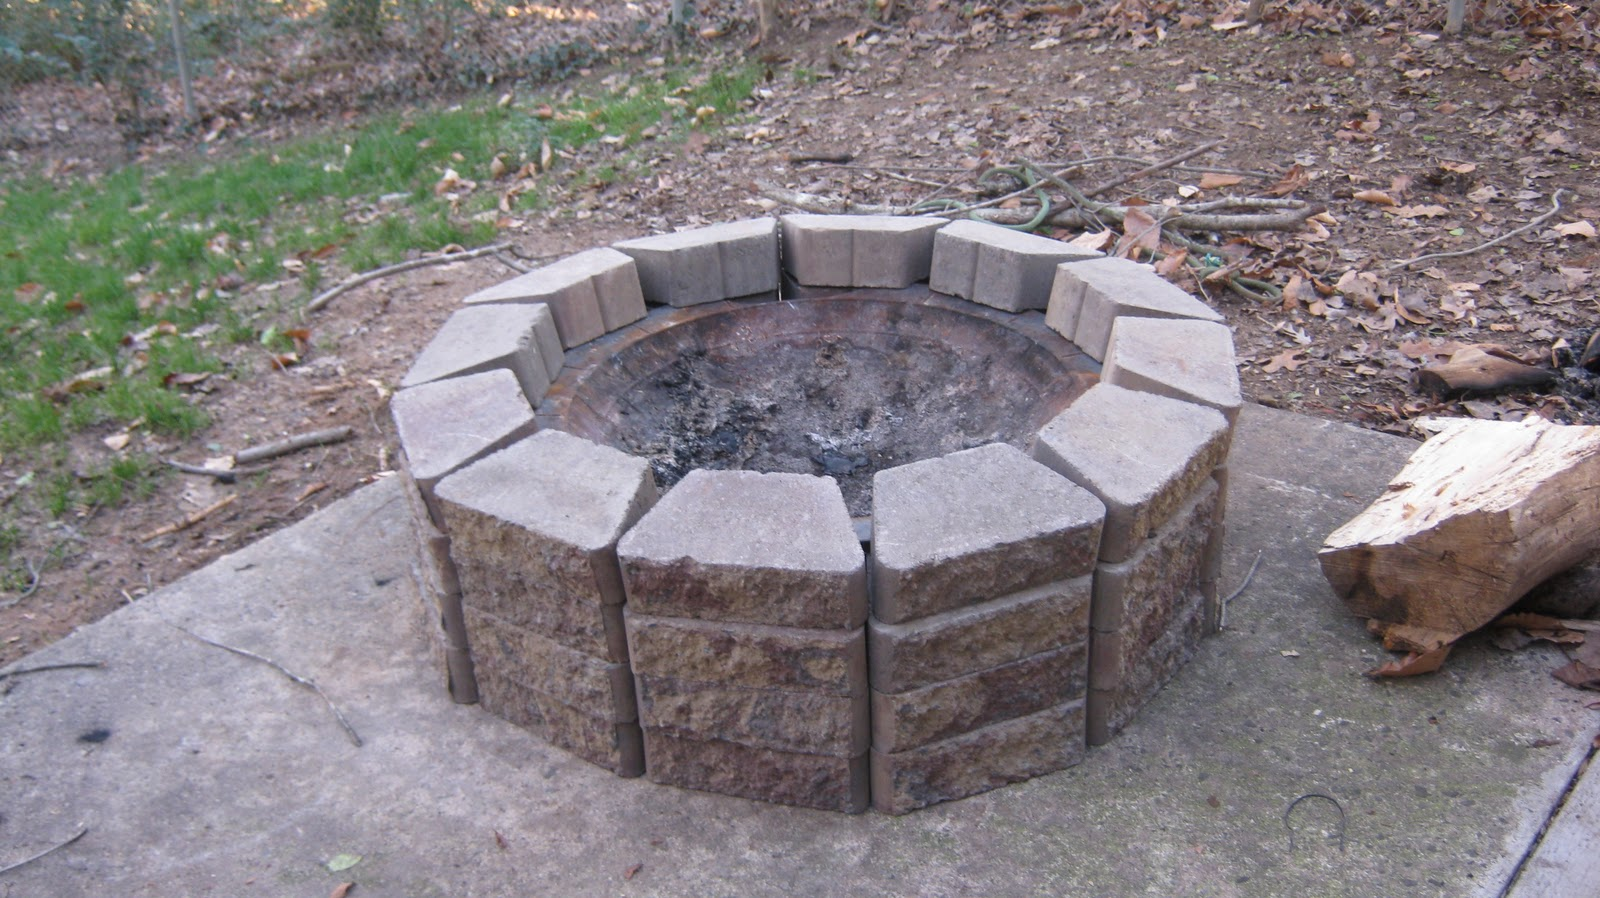 My Everyday Exceptional: DIY Making a Patio Fire Pit